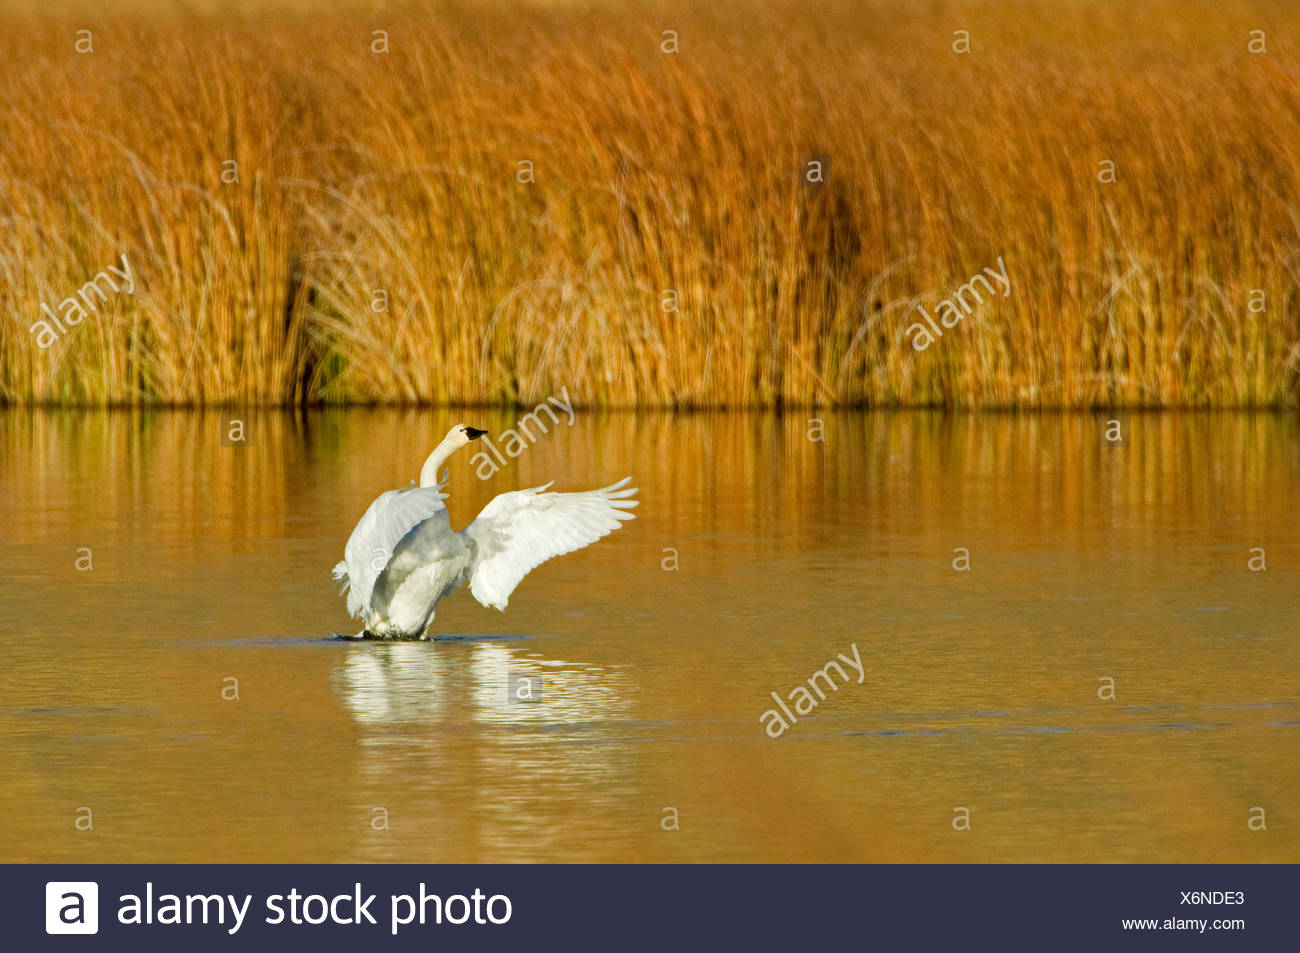 A Trumpeter swan (Cygnus buccinator) comes out of water on a beautiful fall day just south of Kamloops British Columbia Canada - Stock Image